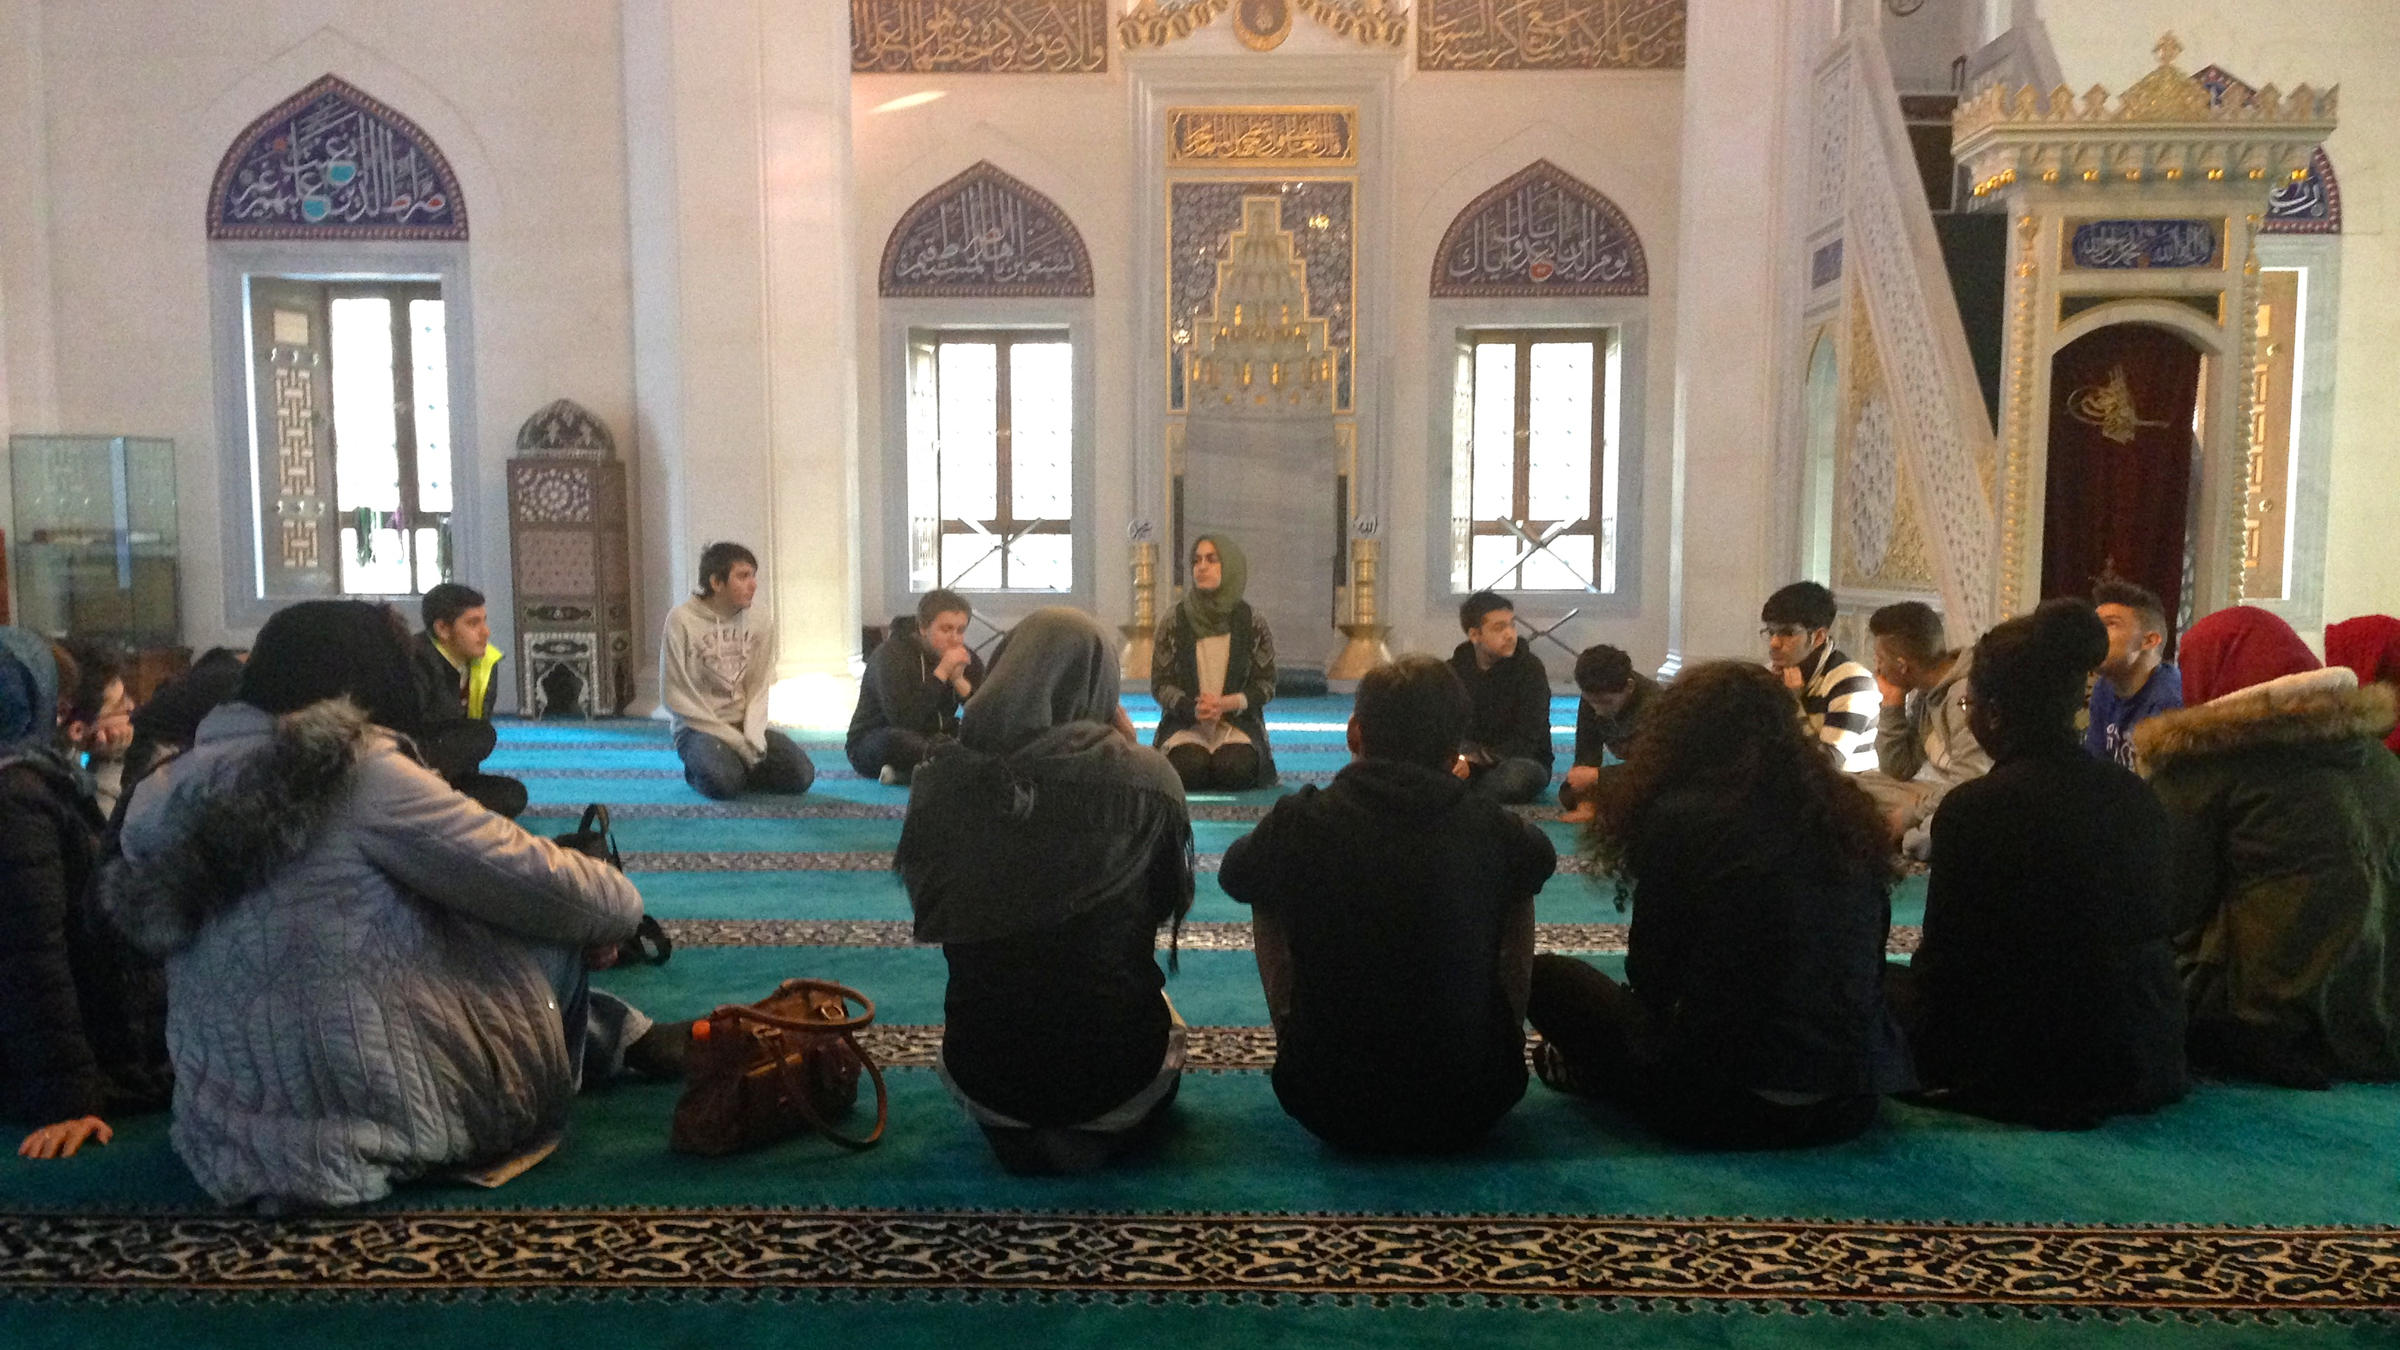 muslim singles in berlin center Meet spanish muslims on lovehabibi - the number one place on the web for connecting with muslims and islamically-minded people from spain  muslim singles spain.